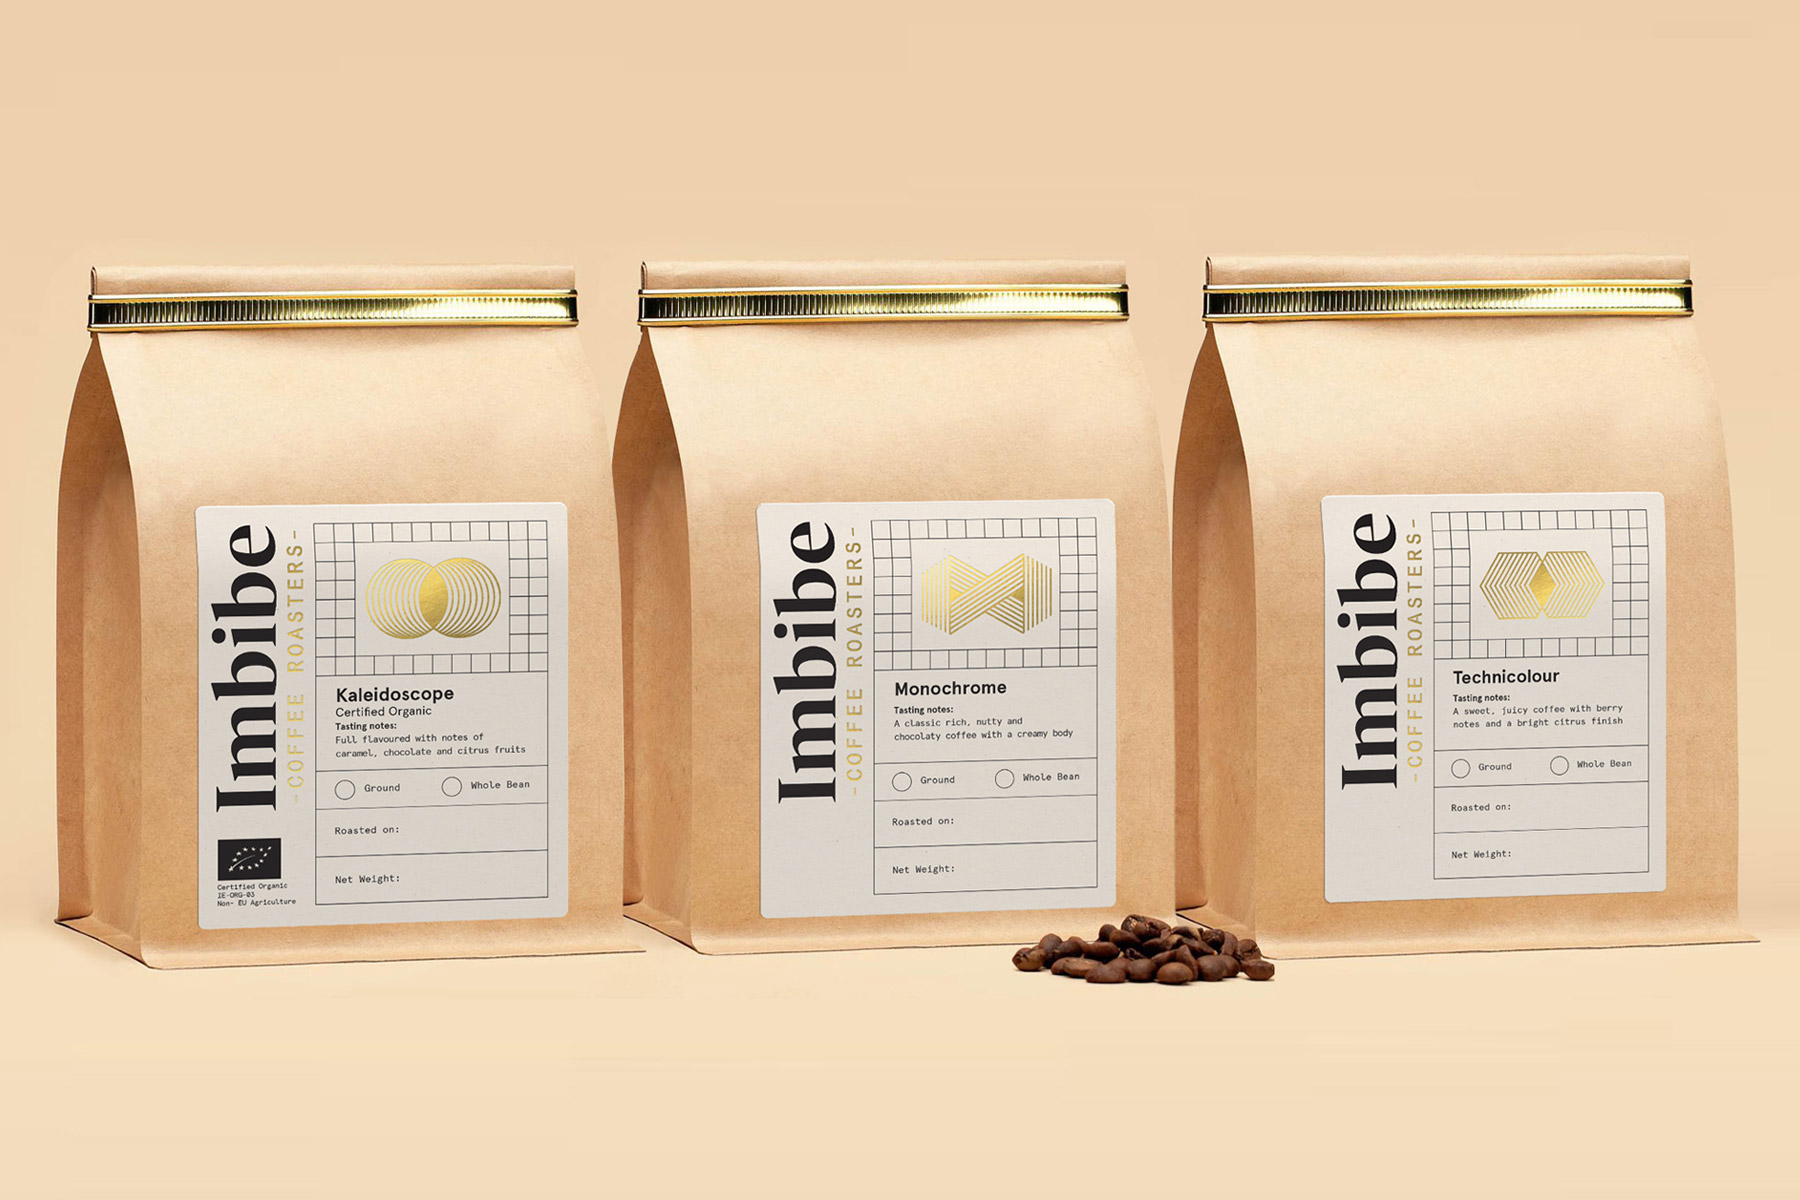 Cover image: Imbibe Coffee Roasters